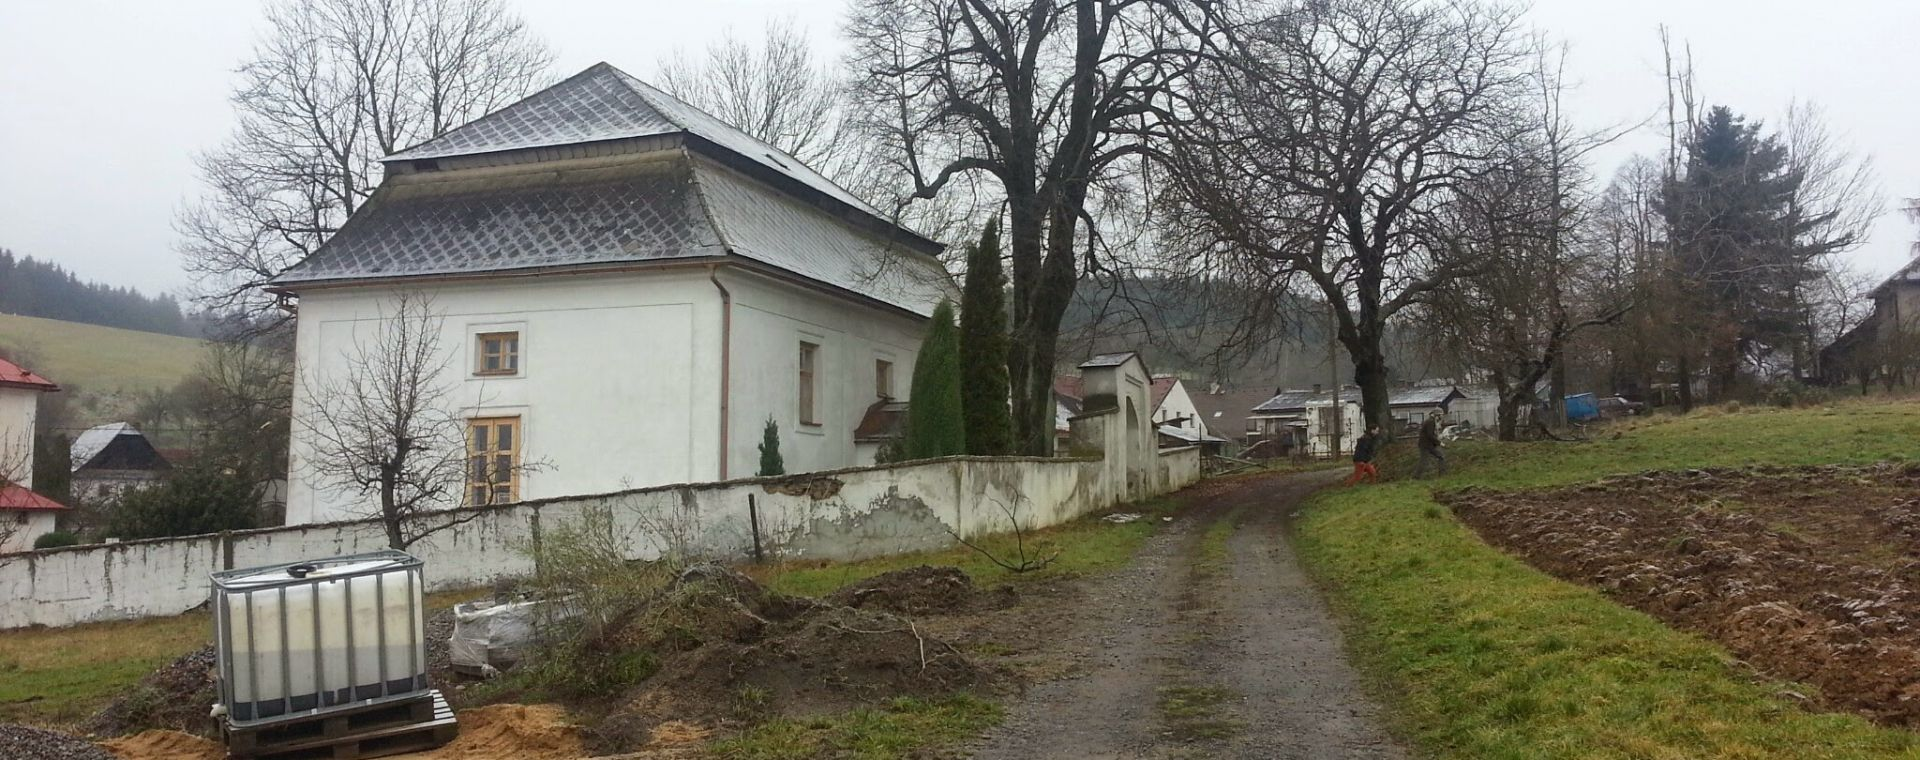 Urban landscape study of the village Dankovice - cooperation, 11/2014, CZ